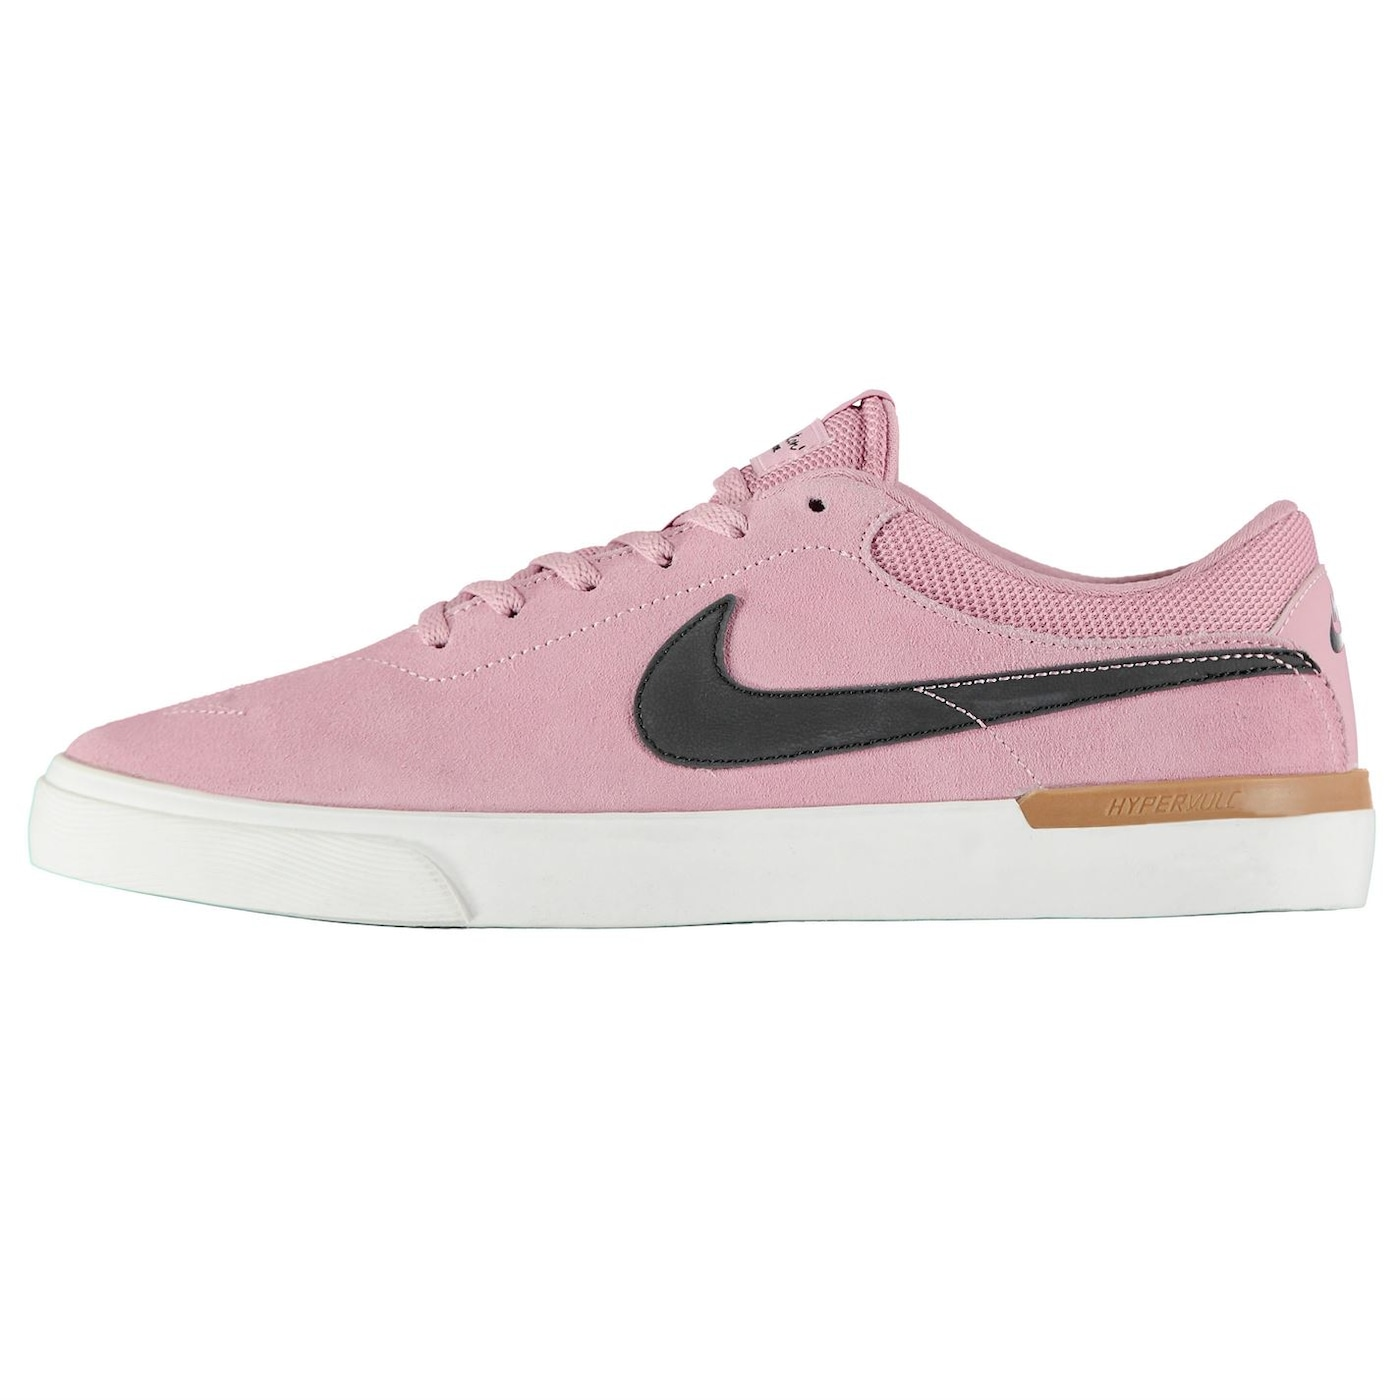 Nike SB Koston Hypervulc Shoe Mens